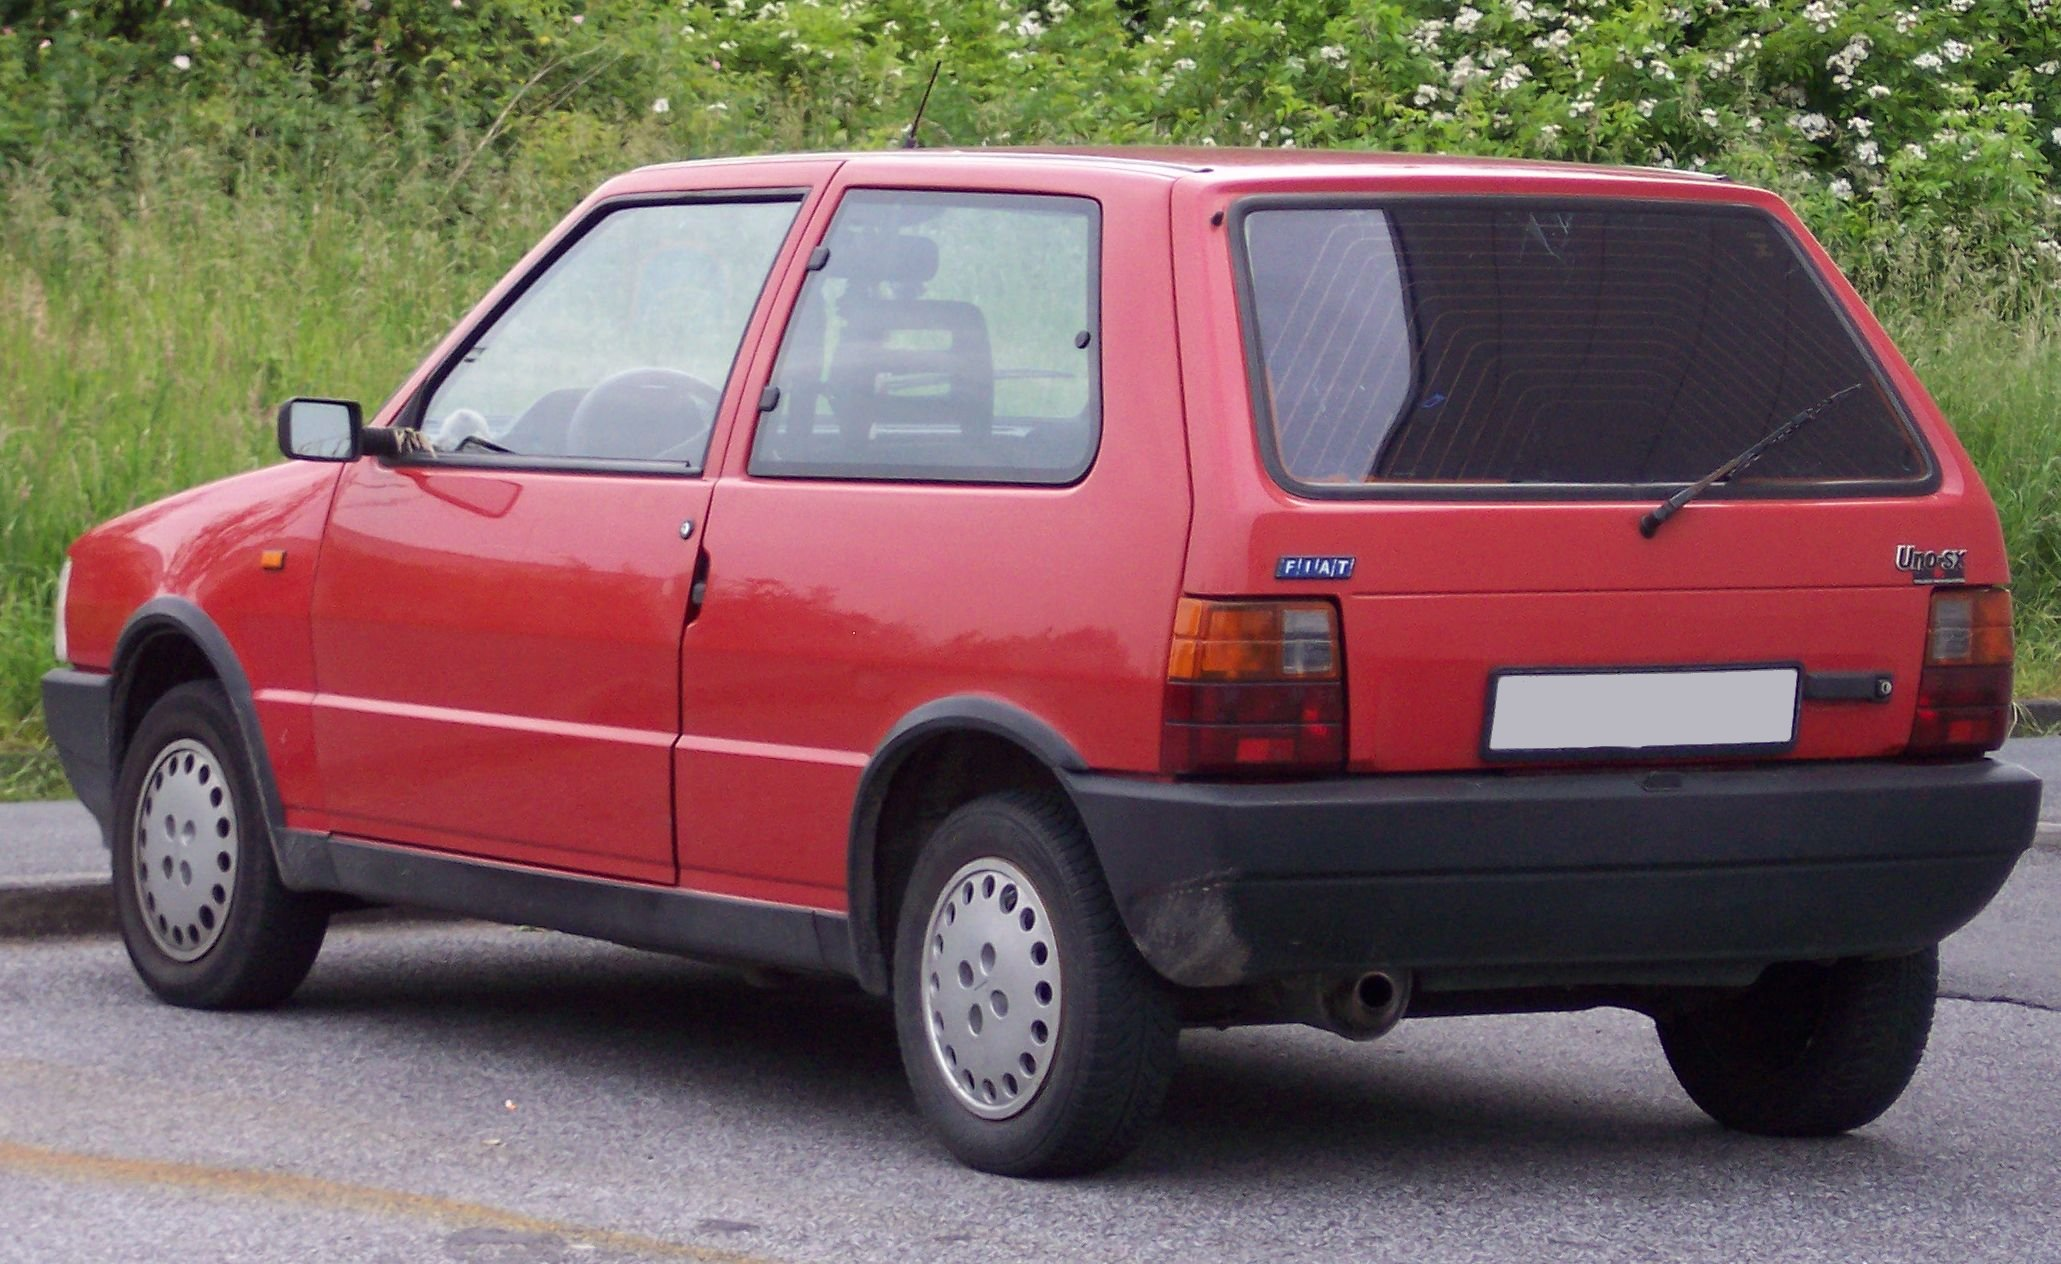 1984 Fiat Uno Photos Informations Articles Manual Free Download 4